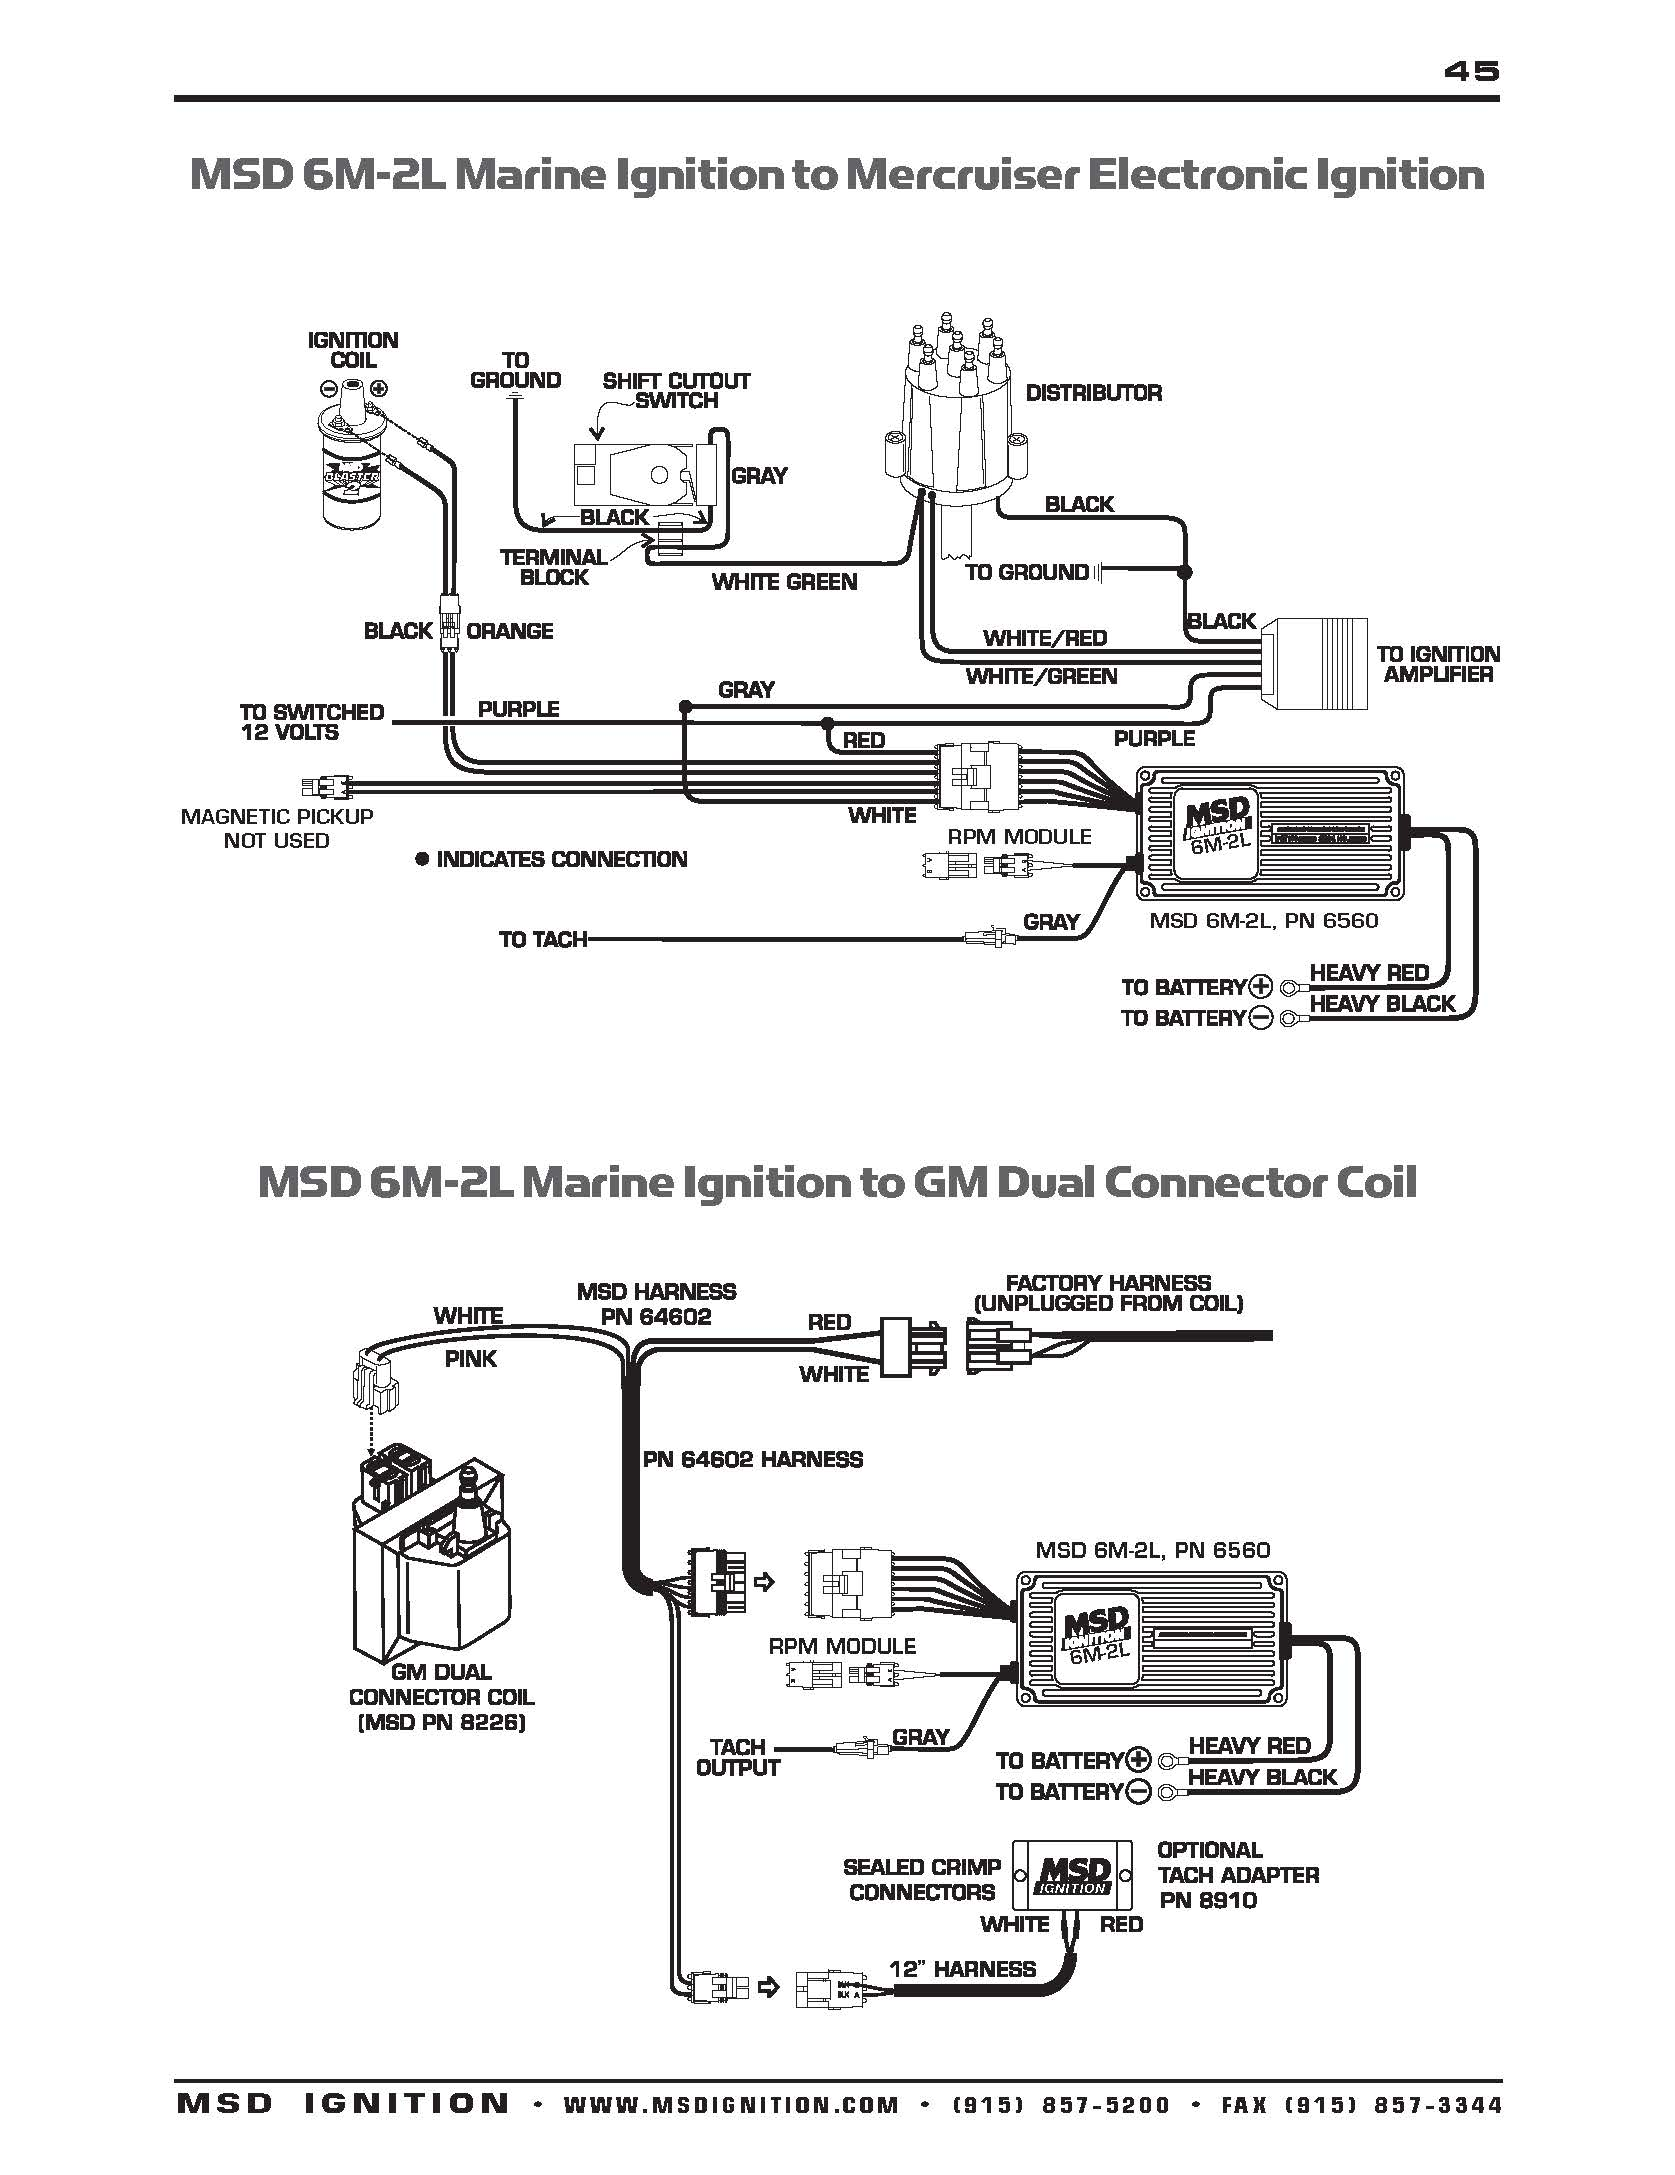 gm ignition wiring harness diagram - wiring diagram trace-authority -  trace-authority.lechicchedimammavale.it  lechicchedimammavale.it